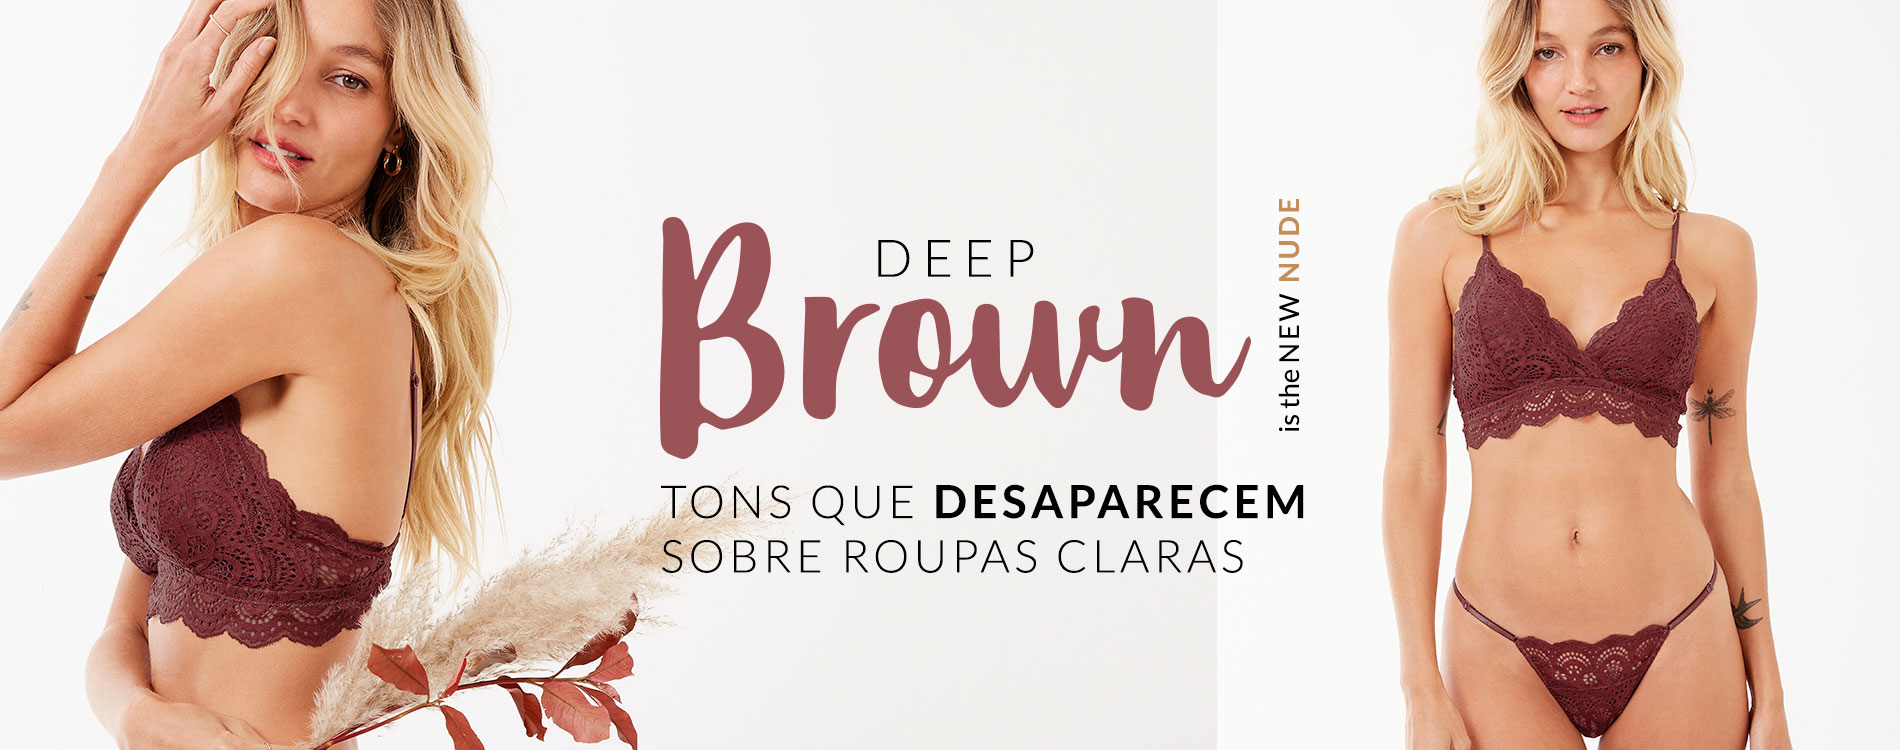 Deep Brown - trackEcommerce